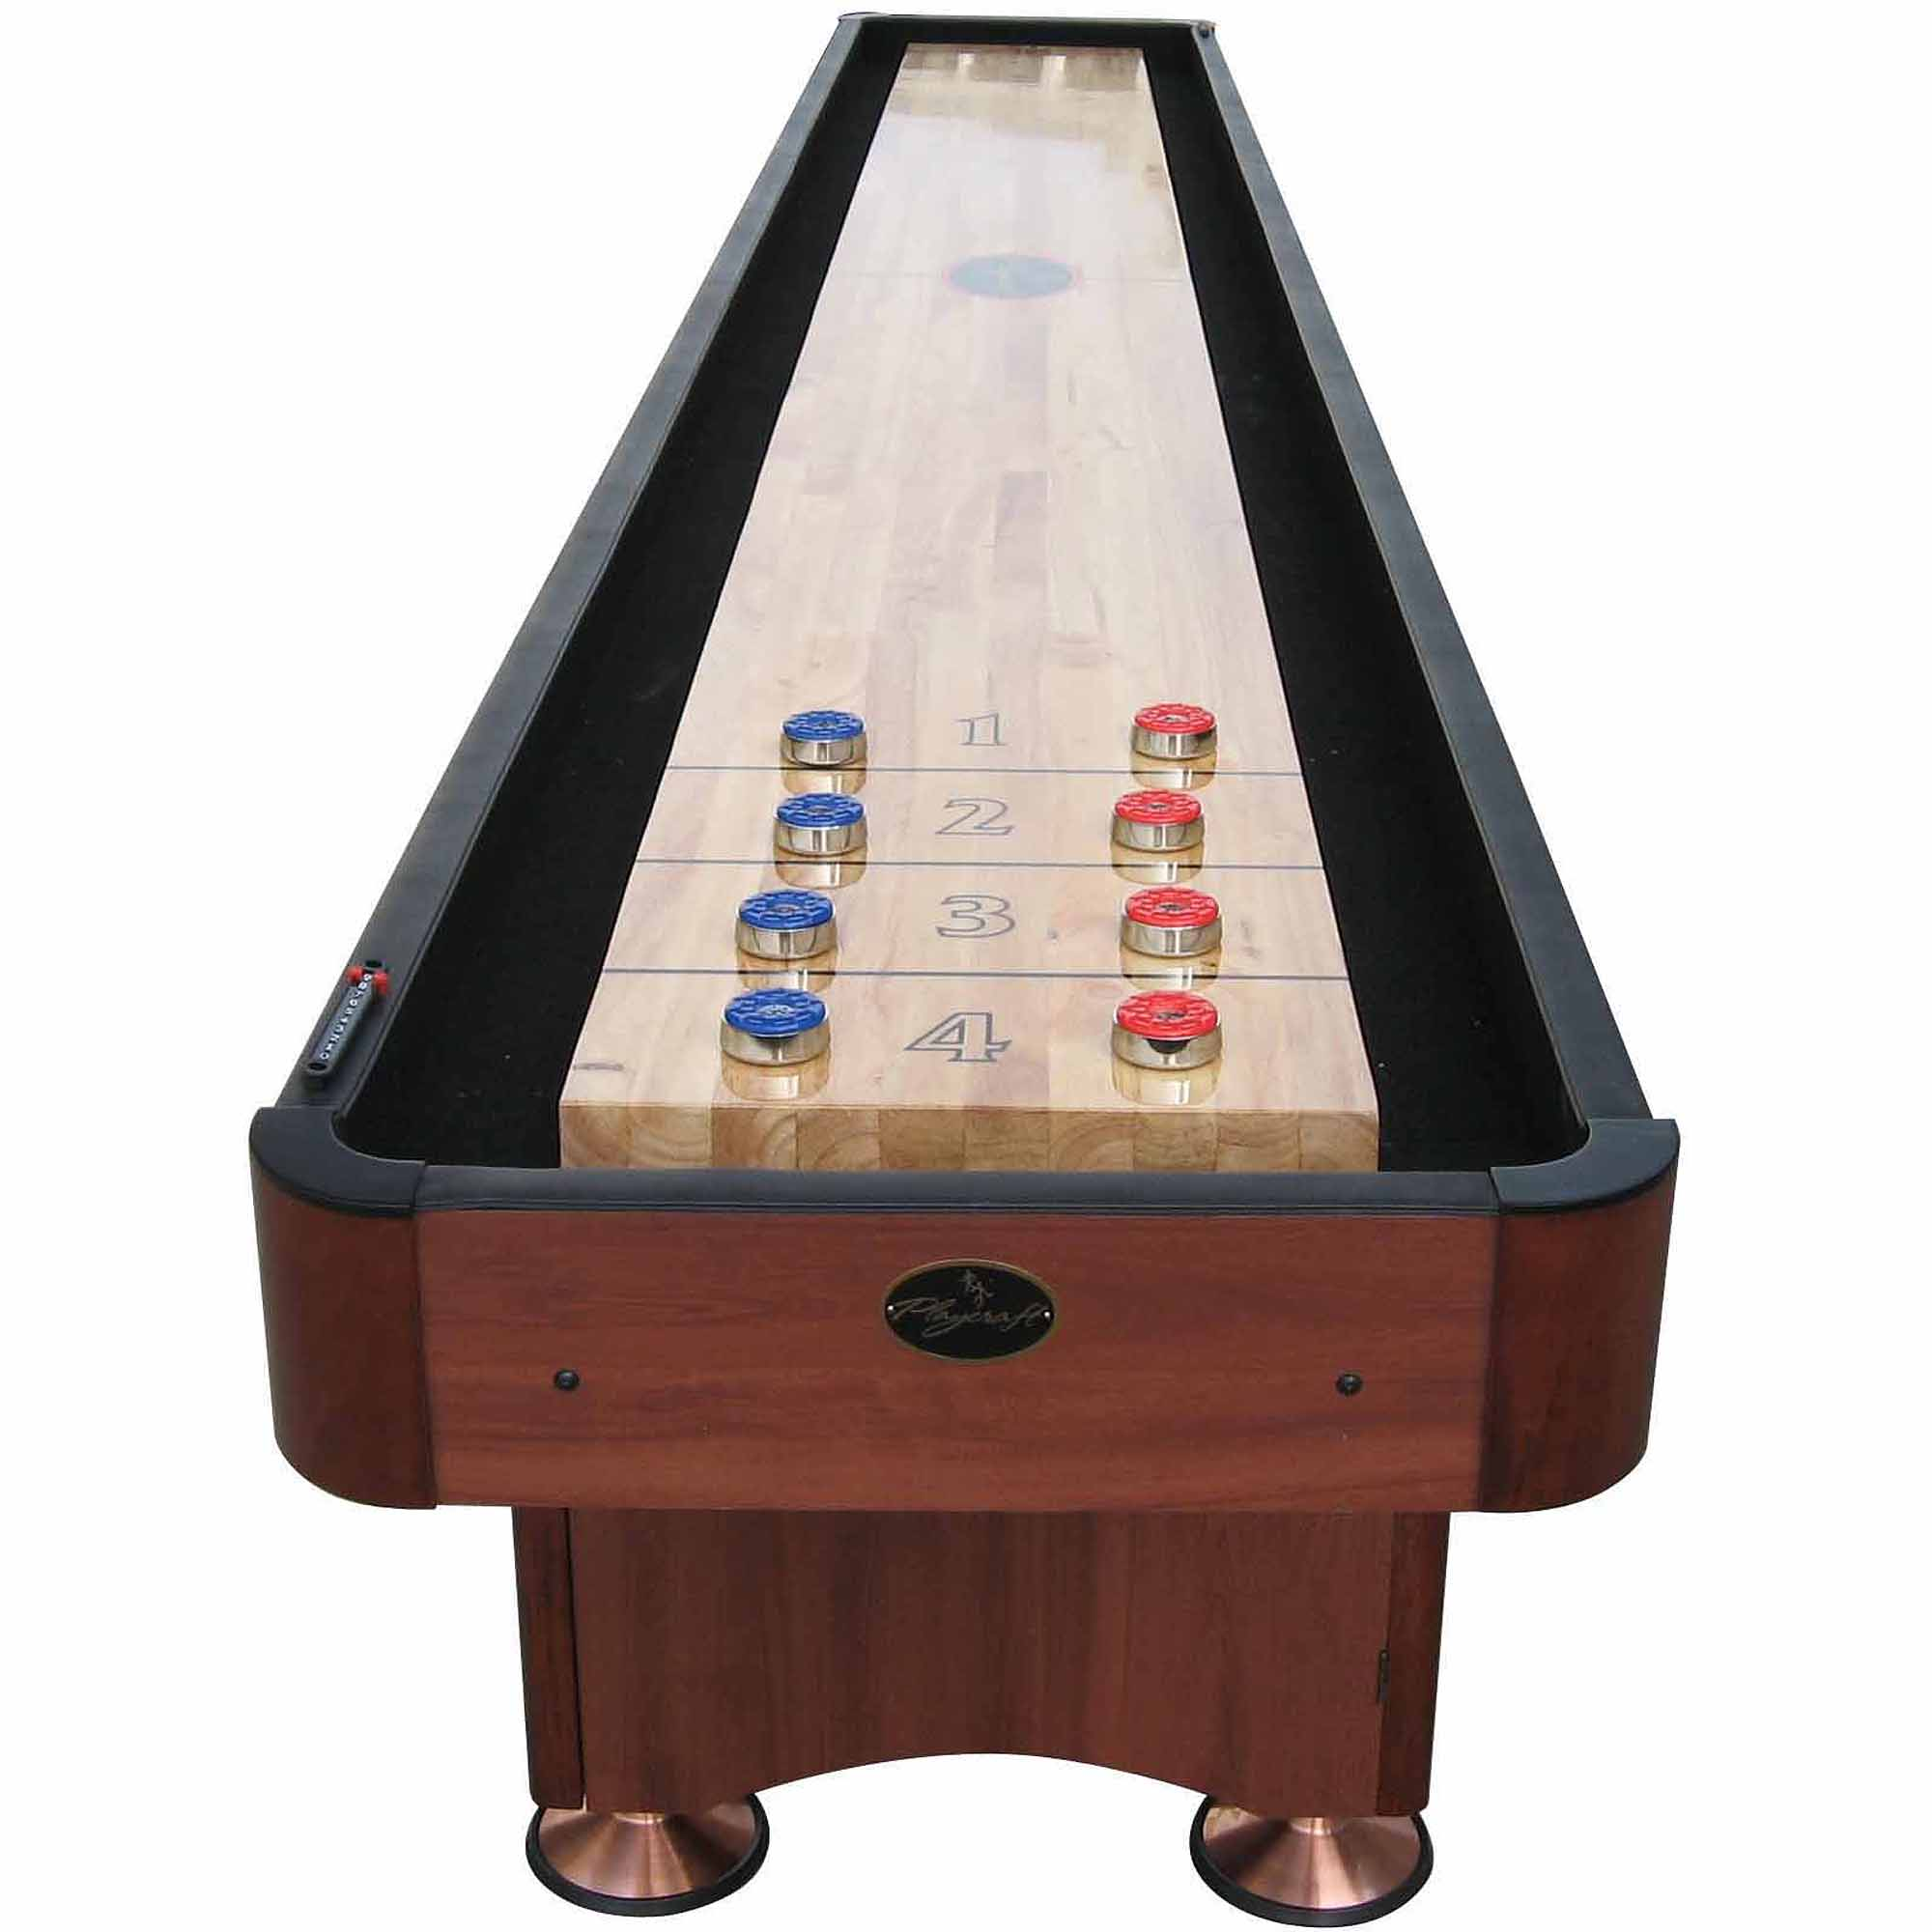 Playcraft Woodbridge Cherry 14' Shuffleboard Table